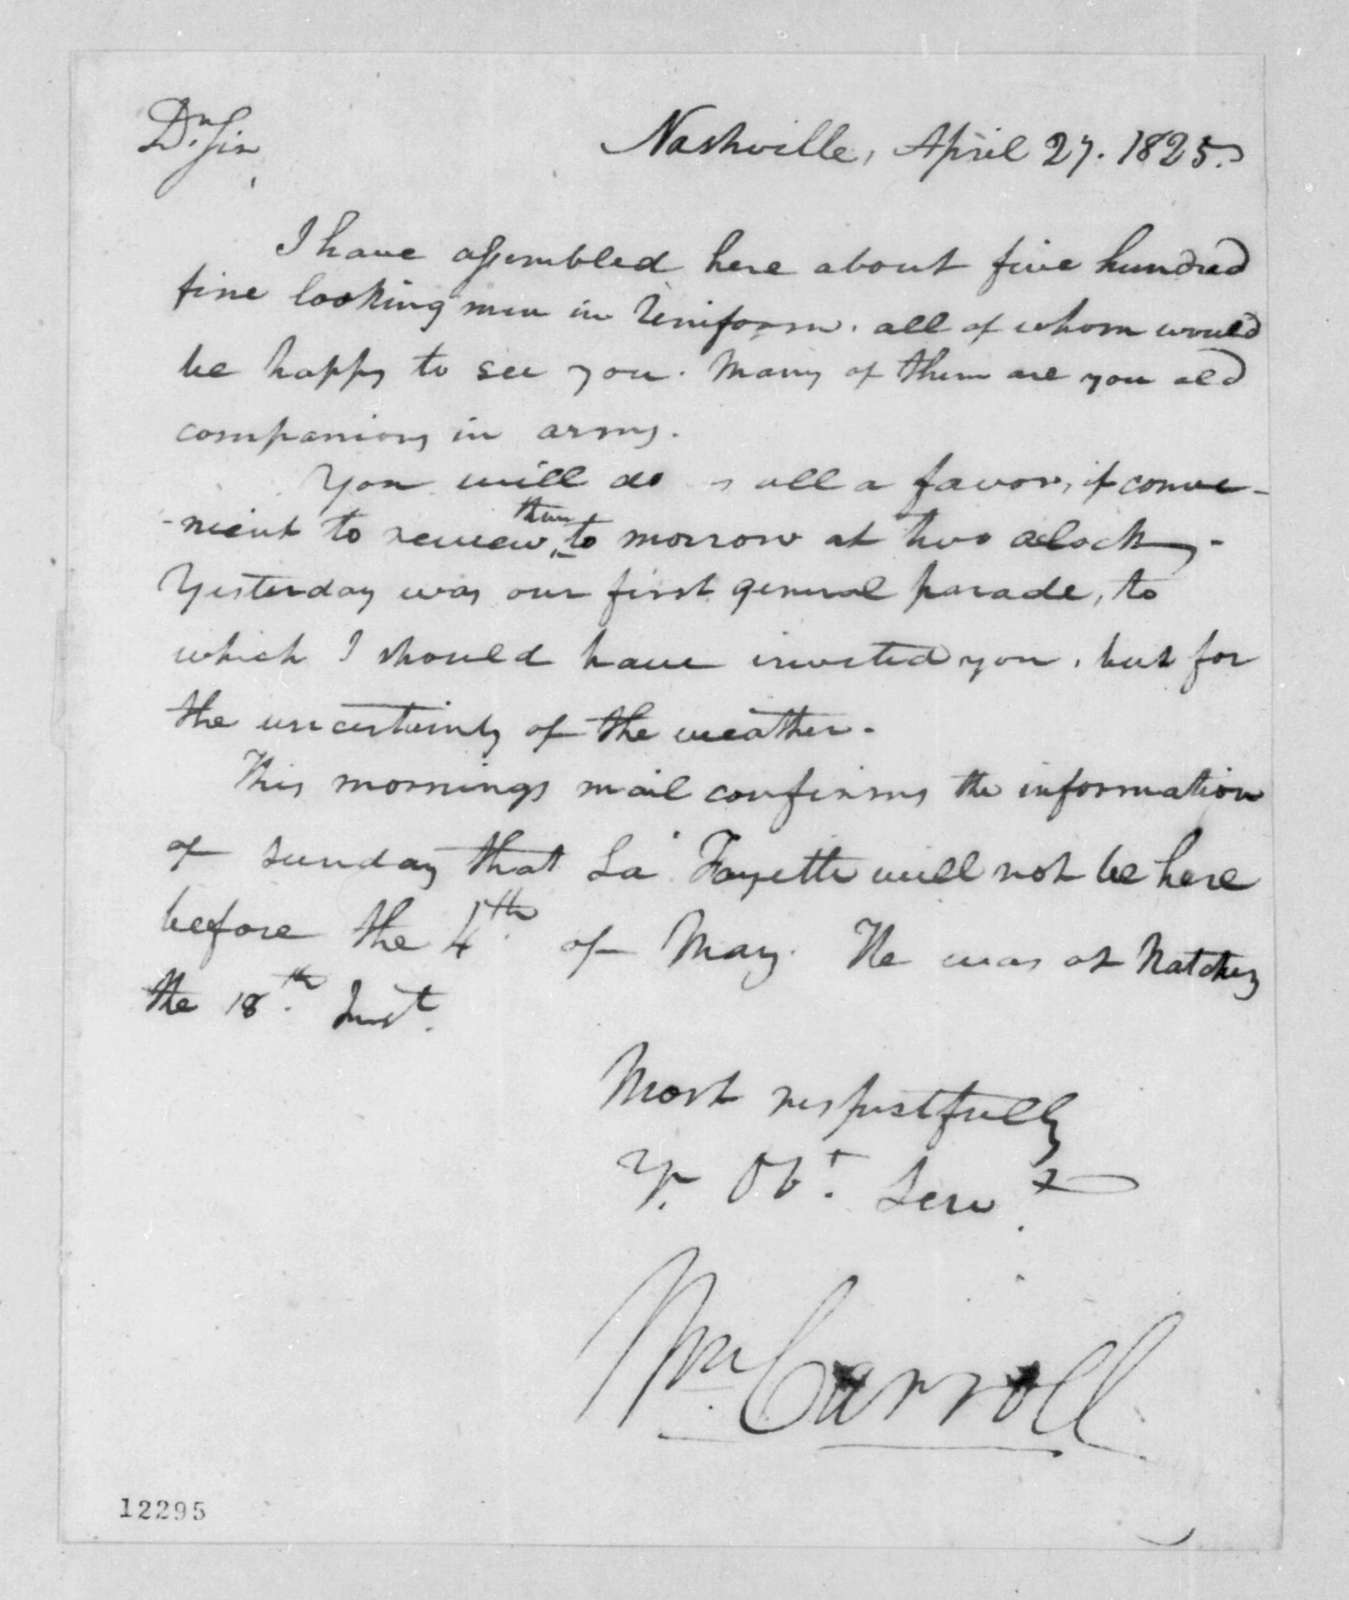 William Carroll to Andrew Jackson, April 27, 1825